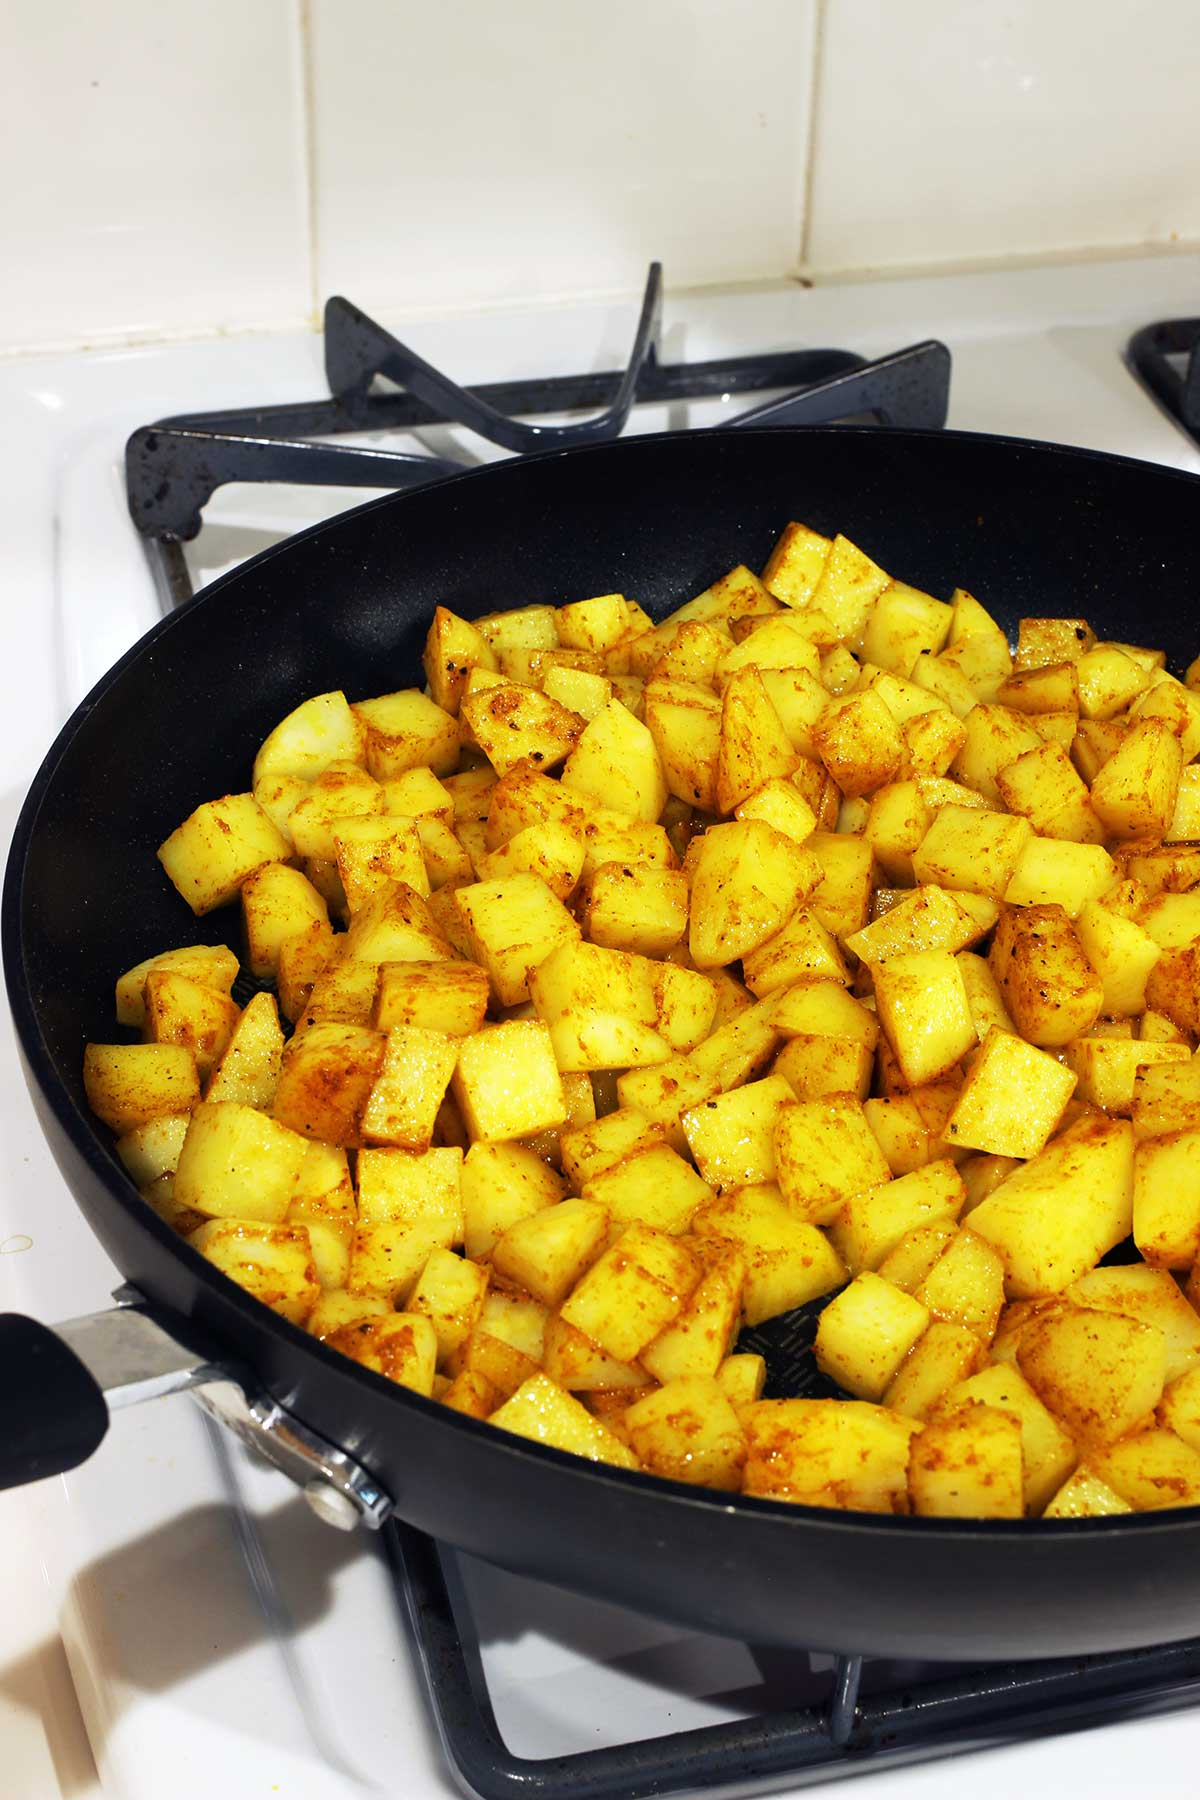 cooking curried potatoes in skillet